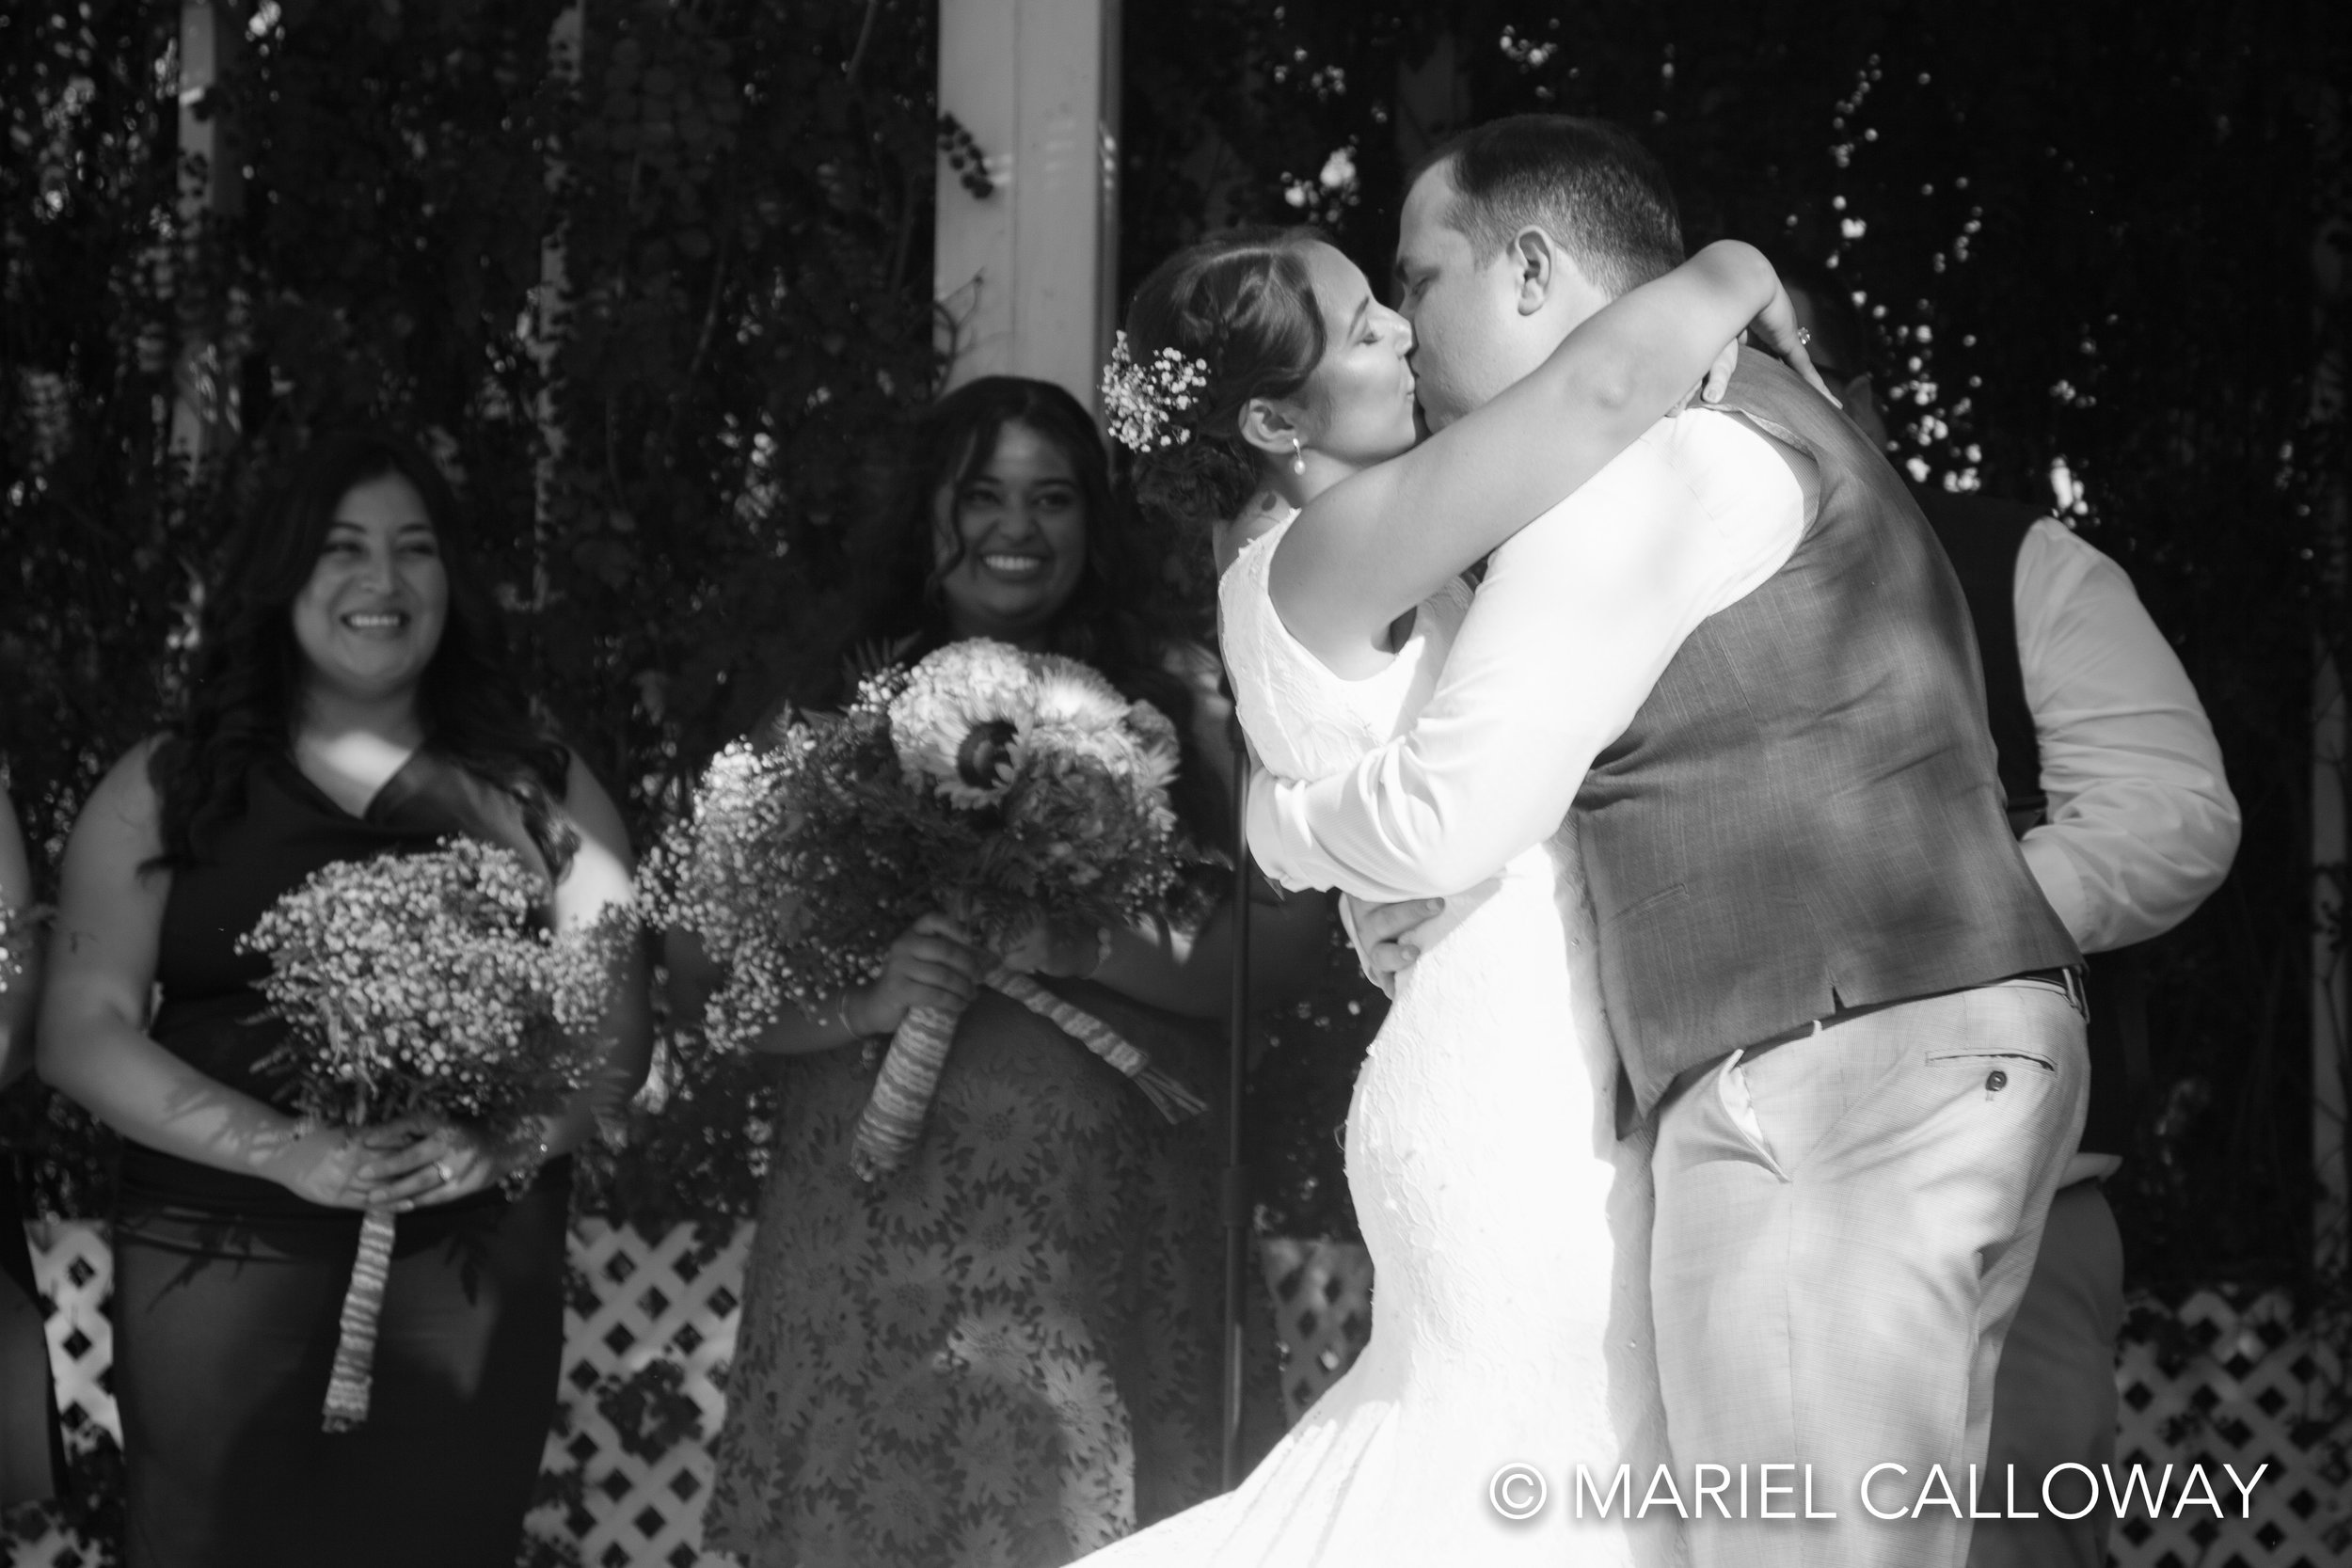 Mariel-Calloway-Wedding-Photographer-Los-Angeles-NatRory-14.jpg